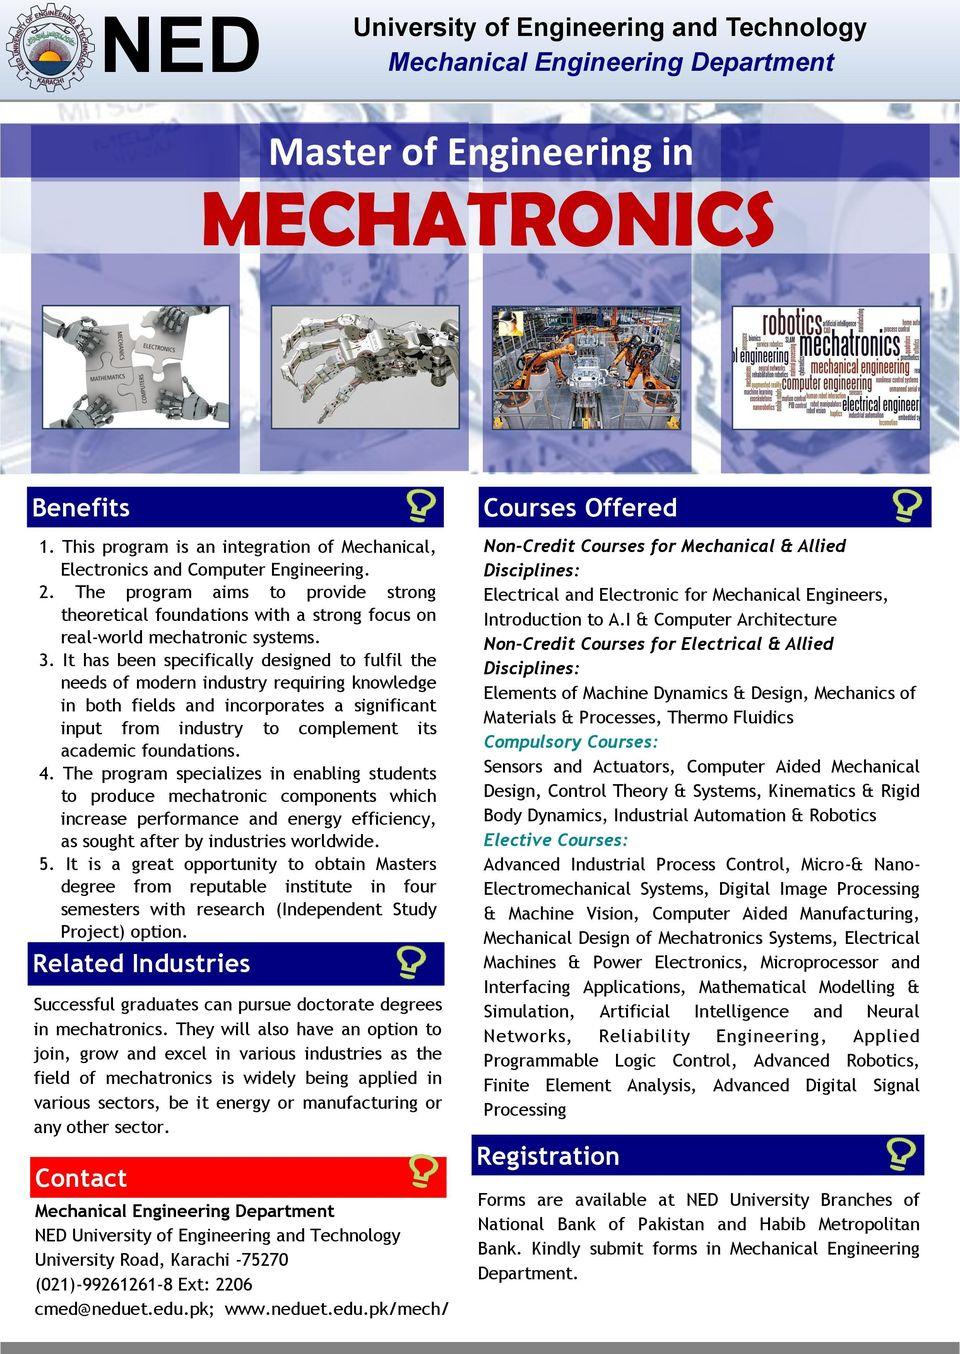 NED University of Engineering and Technology MECHANICAL